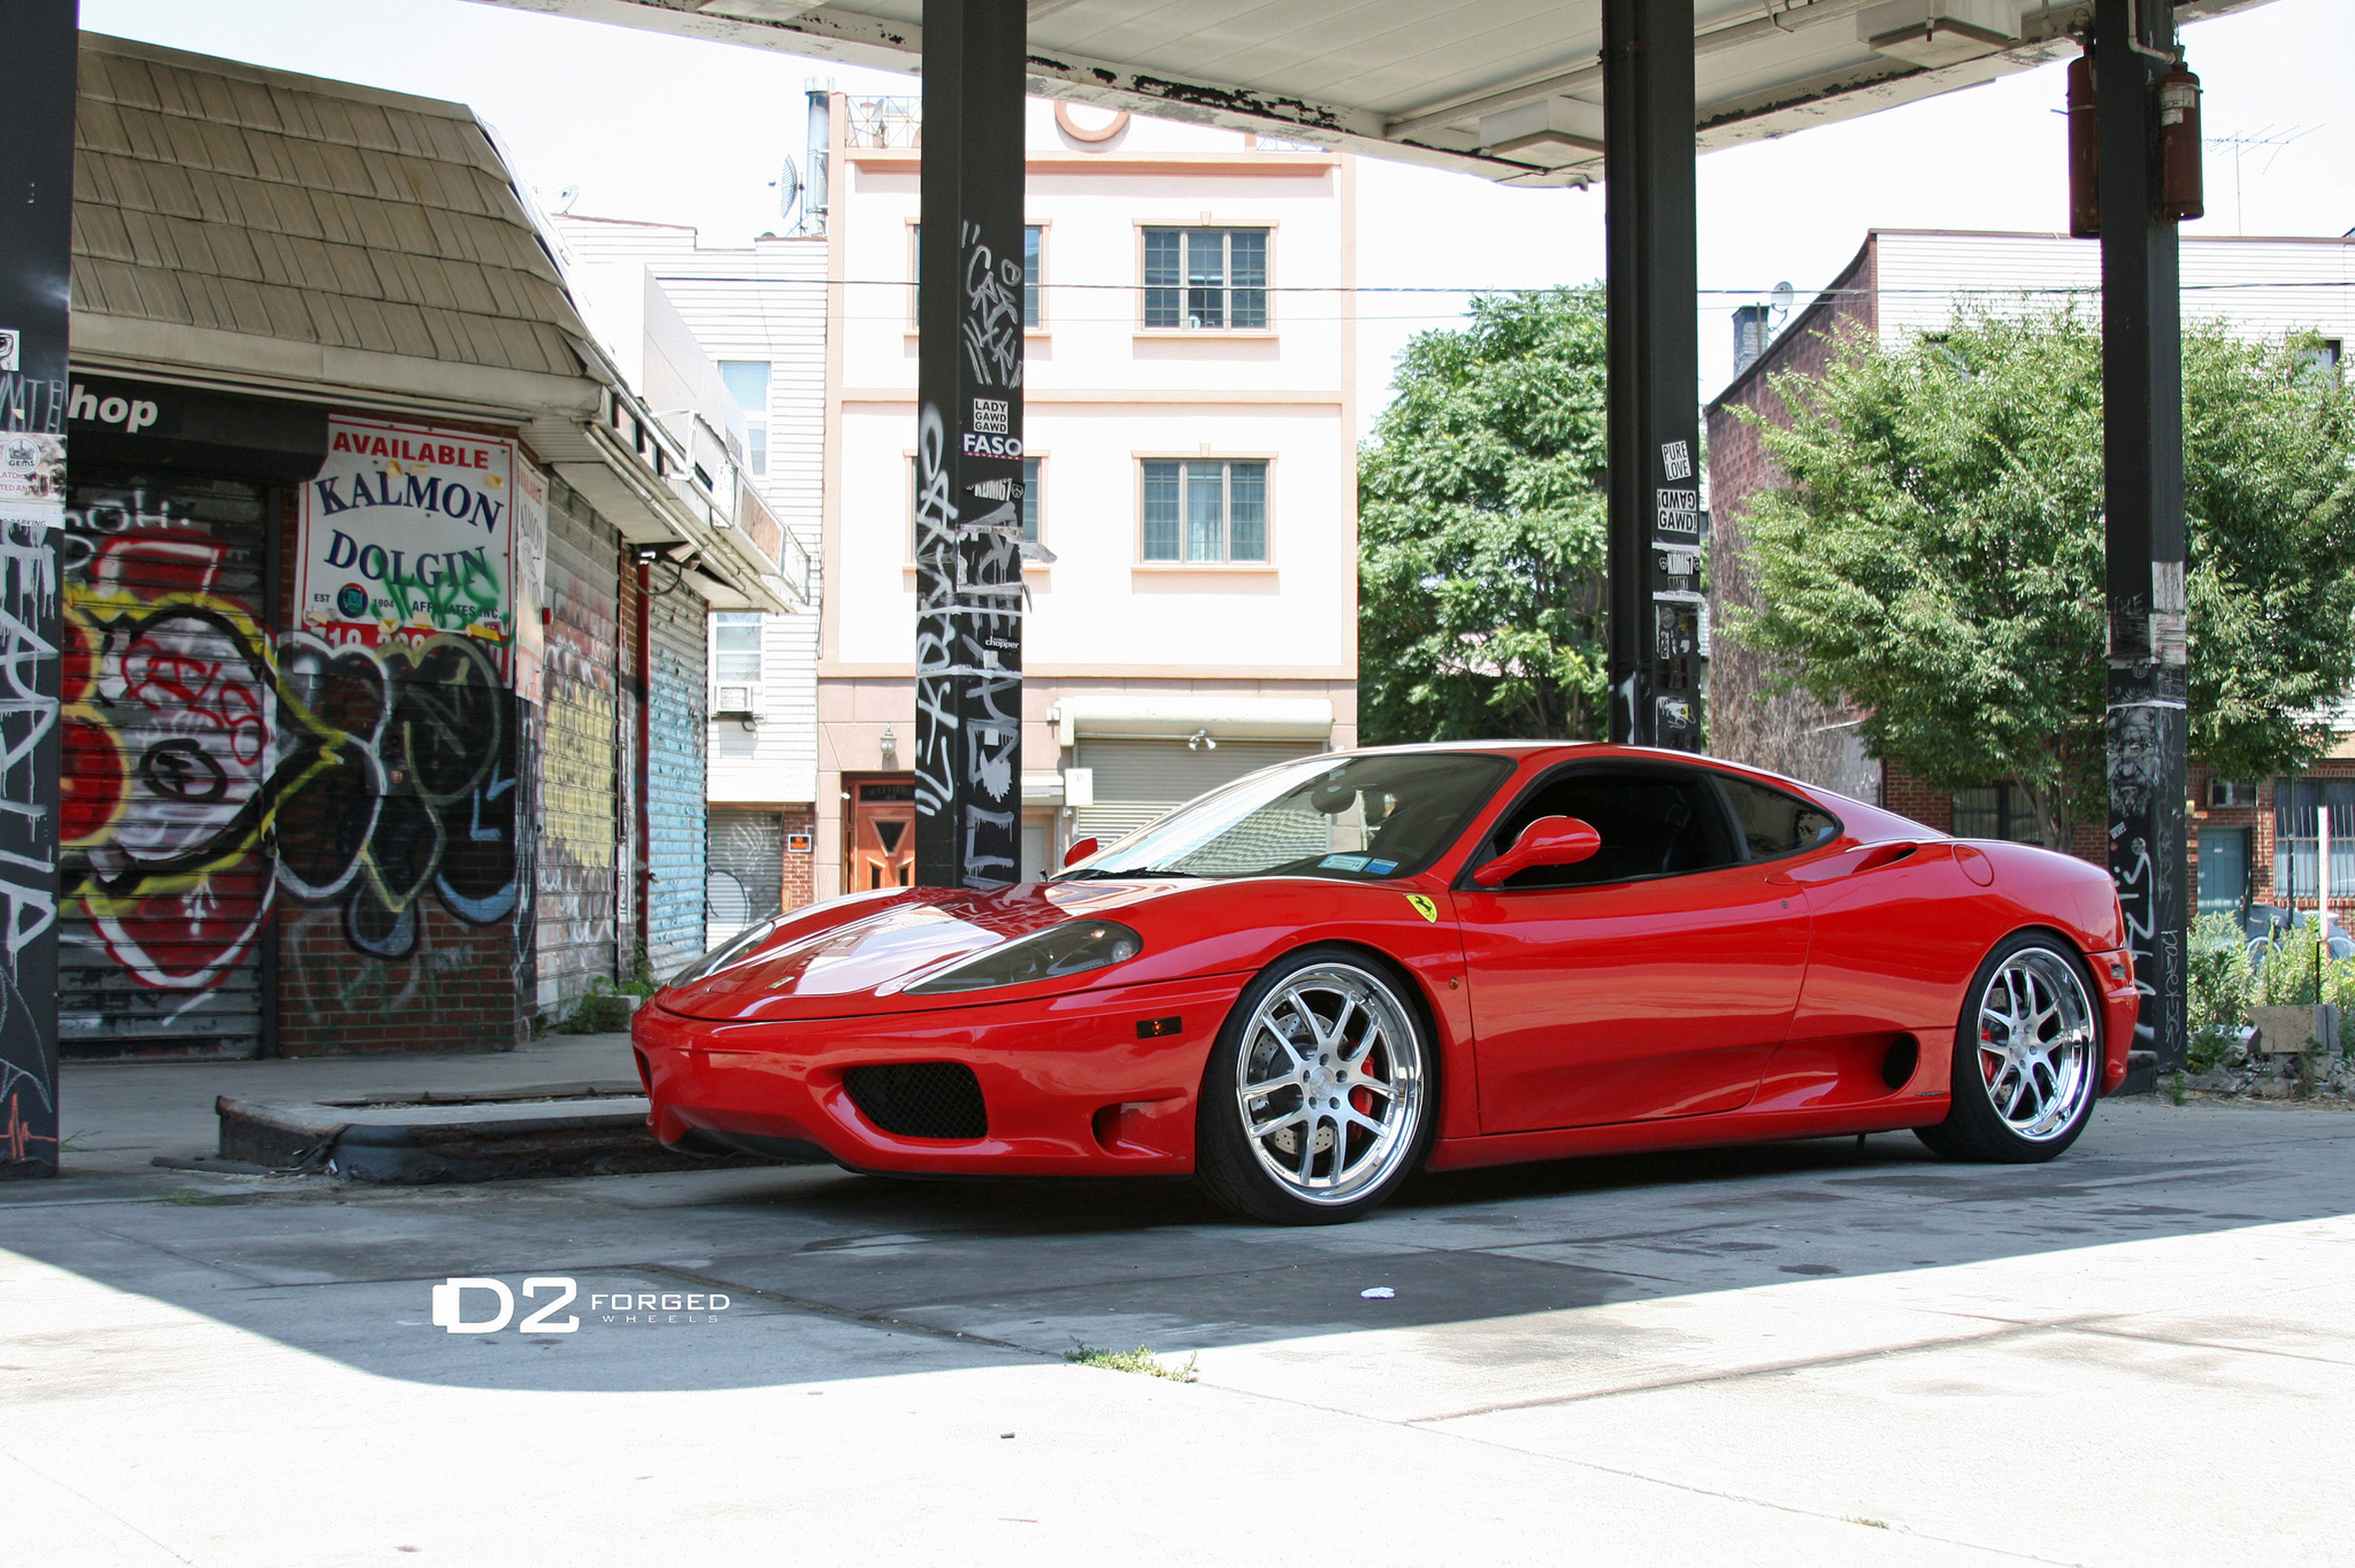 D2forged Ferrari 360 Fms 08 Picture 73372